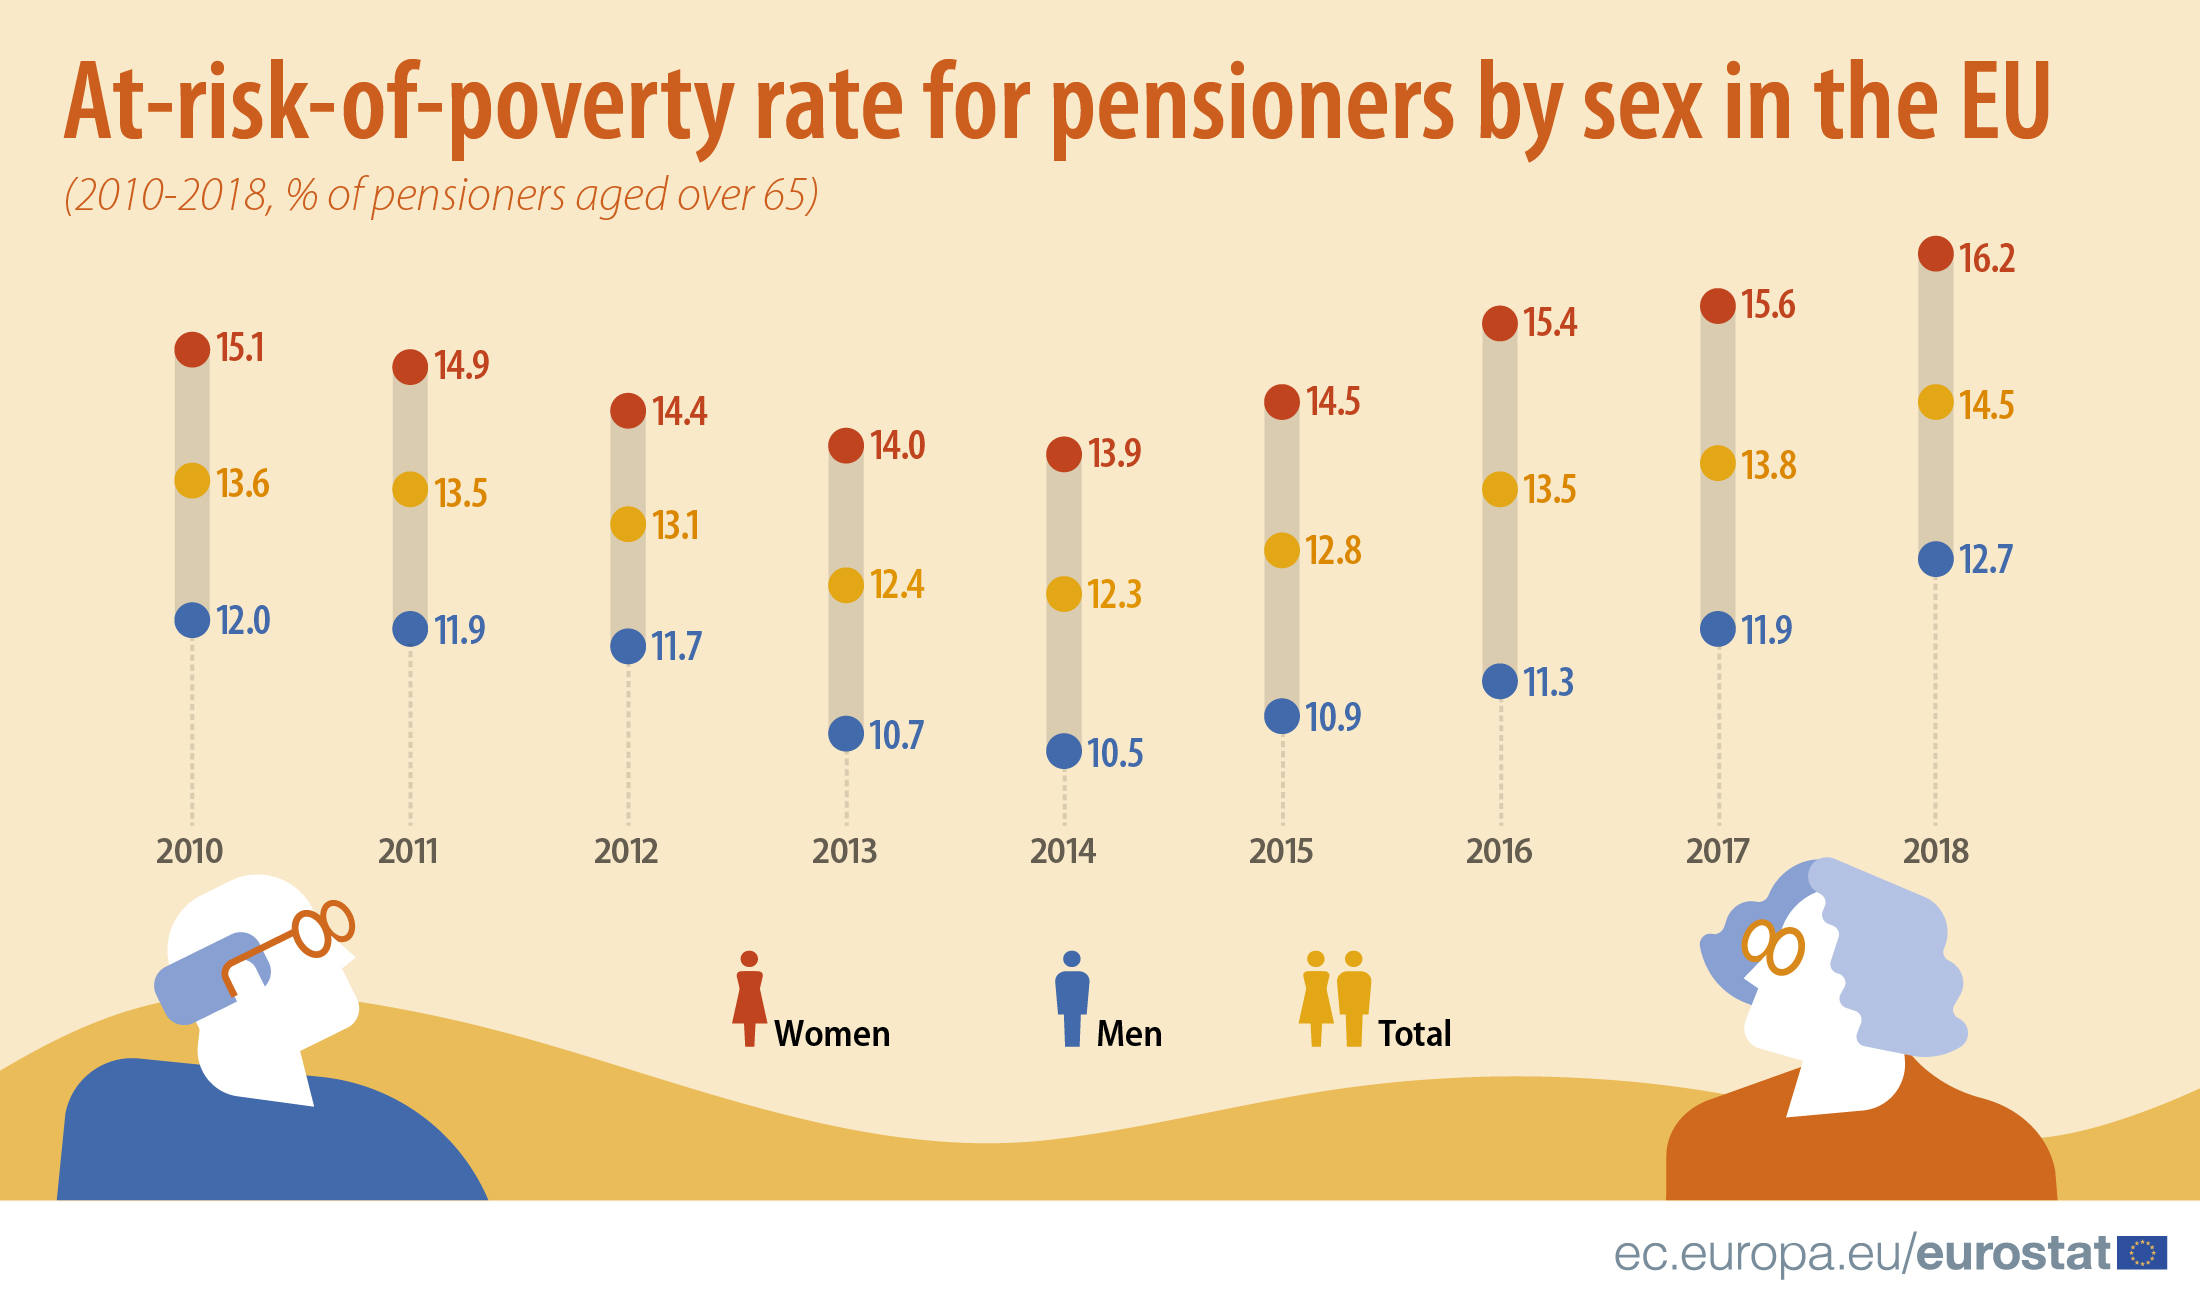 At-risk-of-poverty rate for pensioners by sex in the EU, 2010 2018